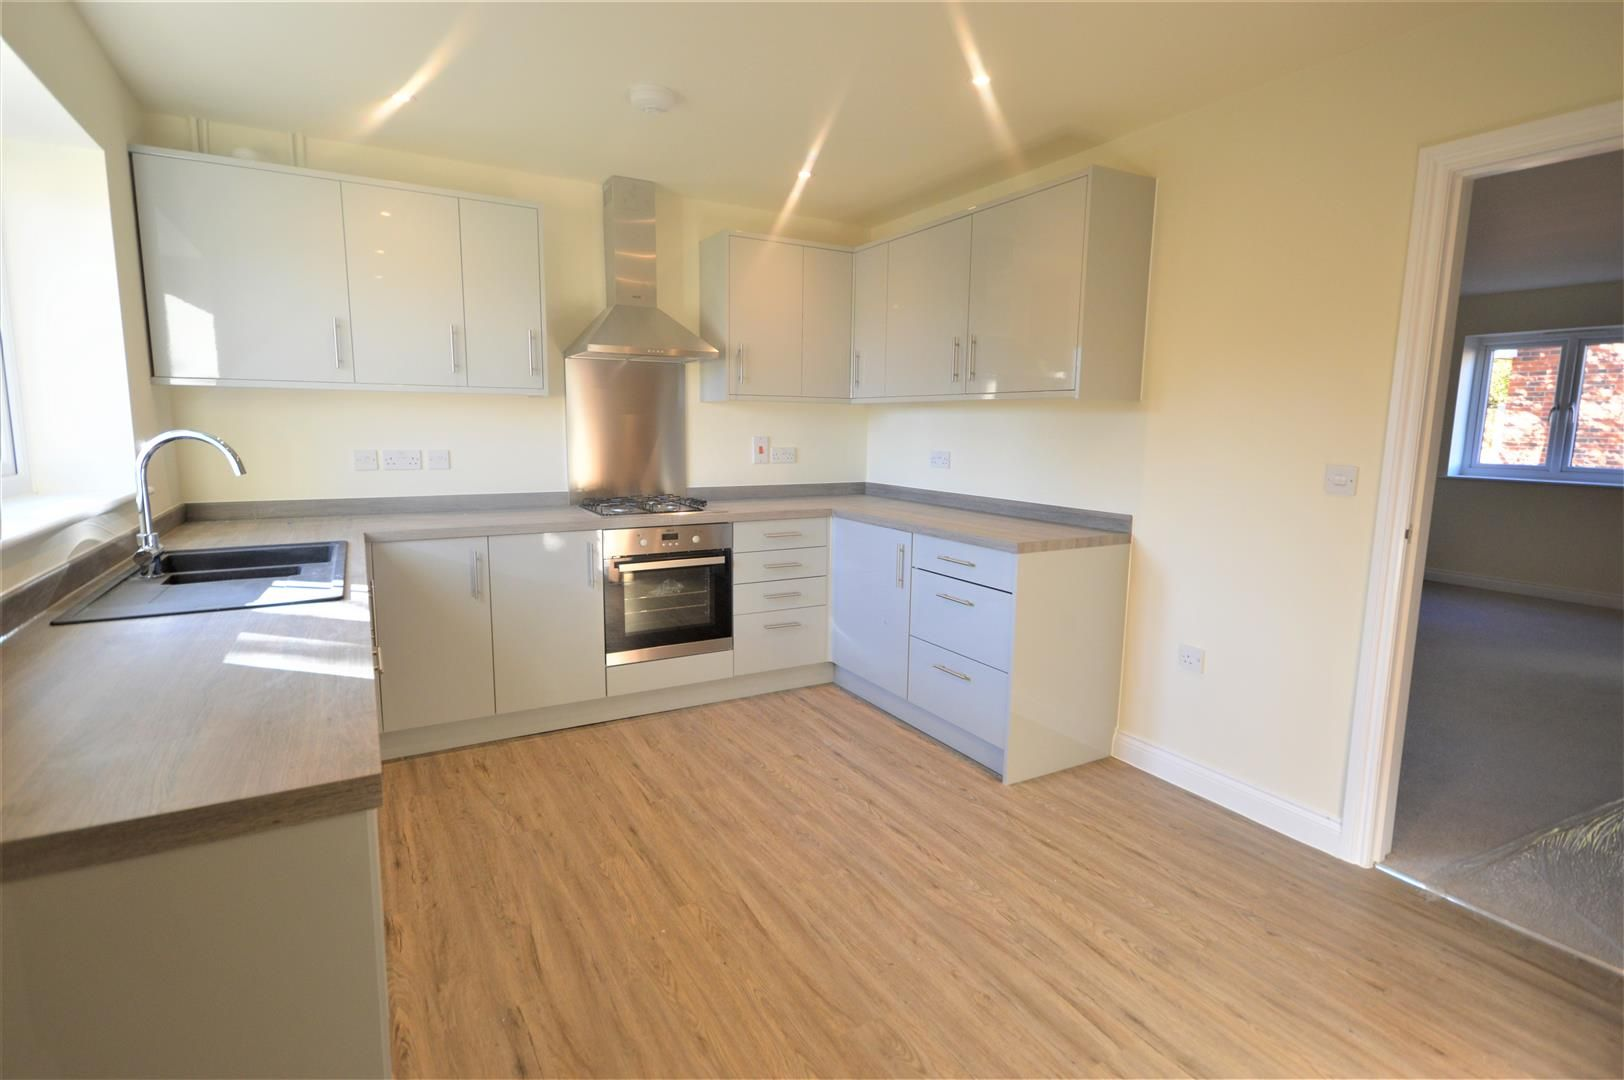 3 bed semi-detached for sale in Kingsland 3